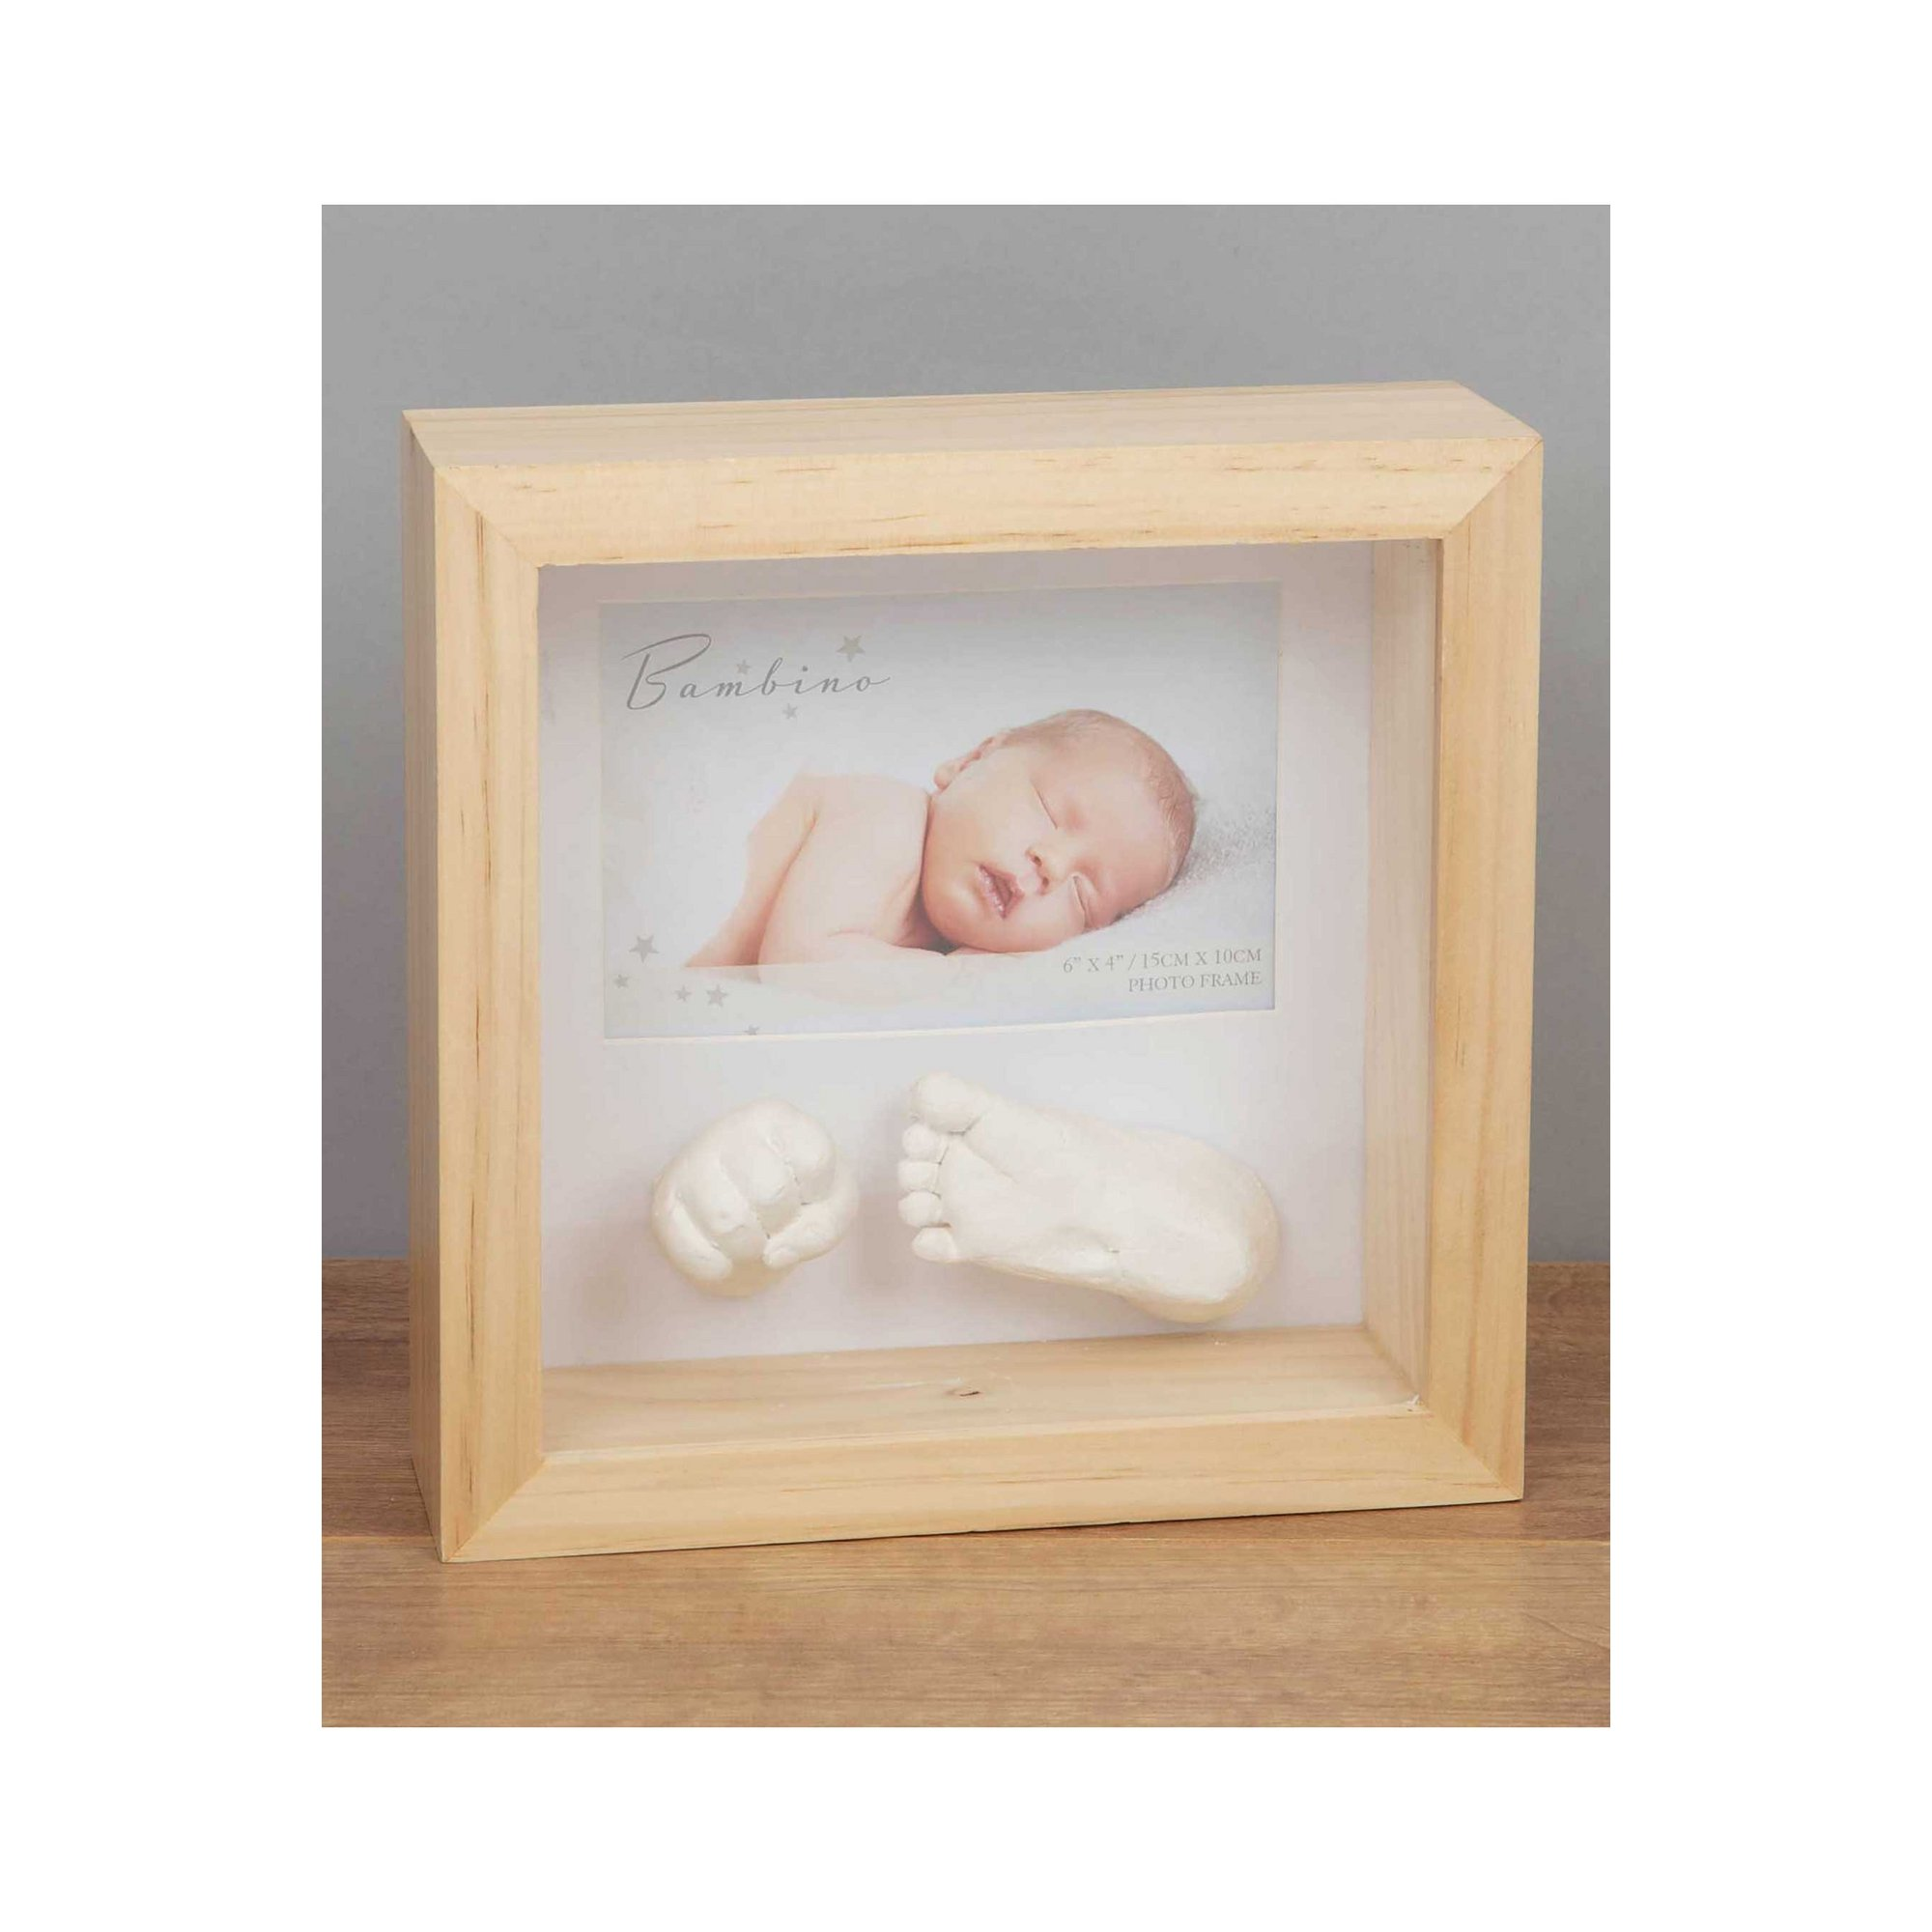 Image of 6 x 4 - Bambino Natural Photo Frame and Casting Kit